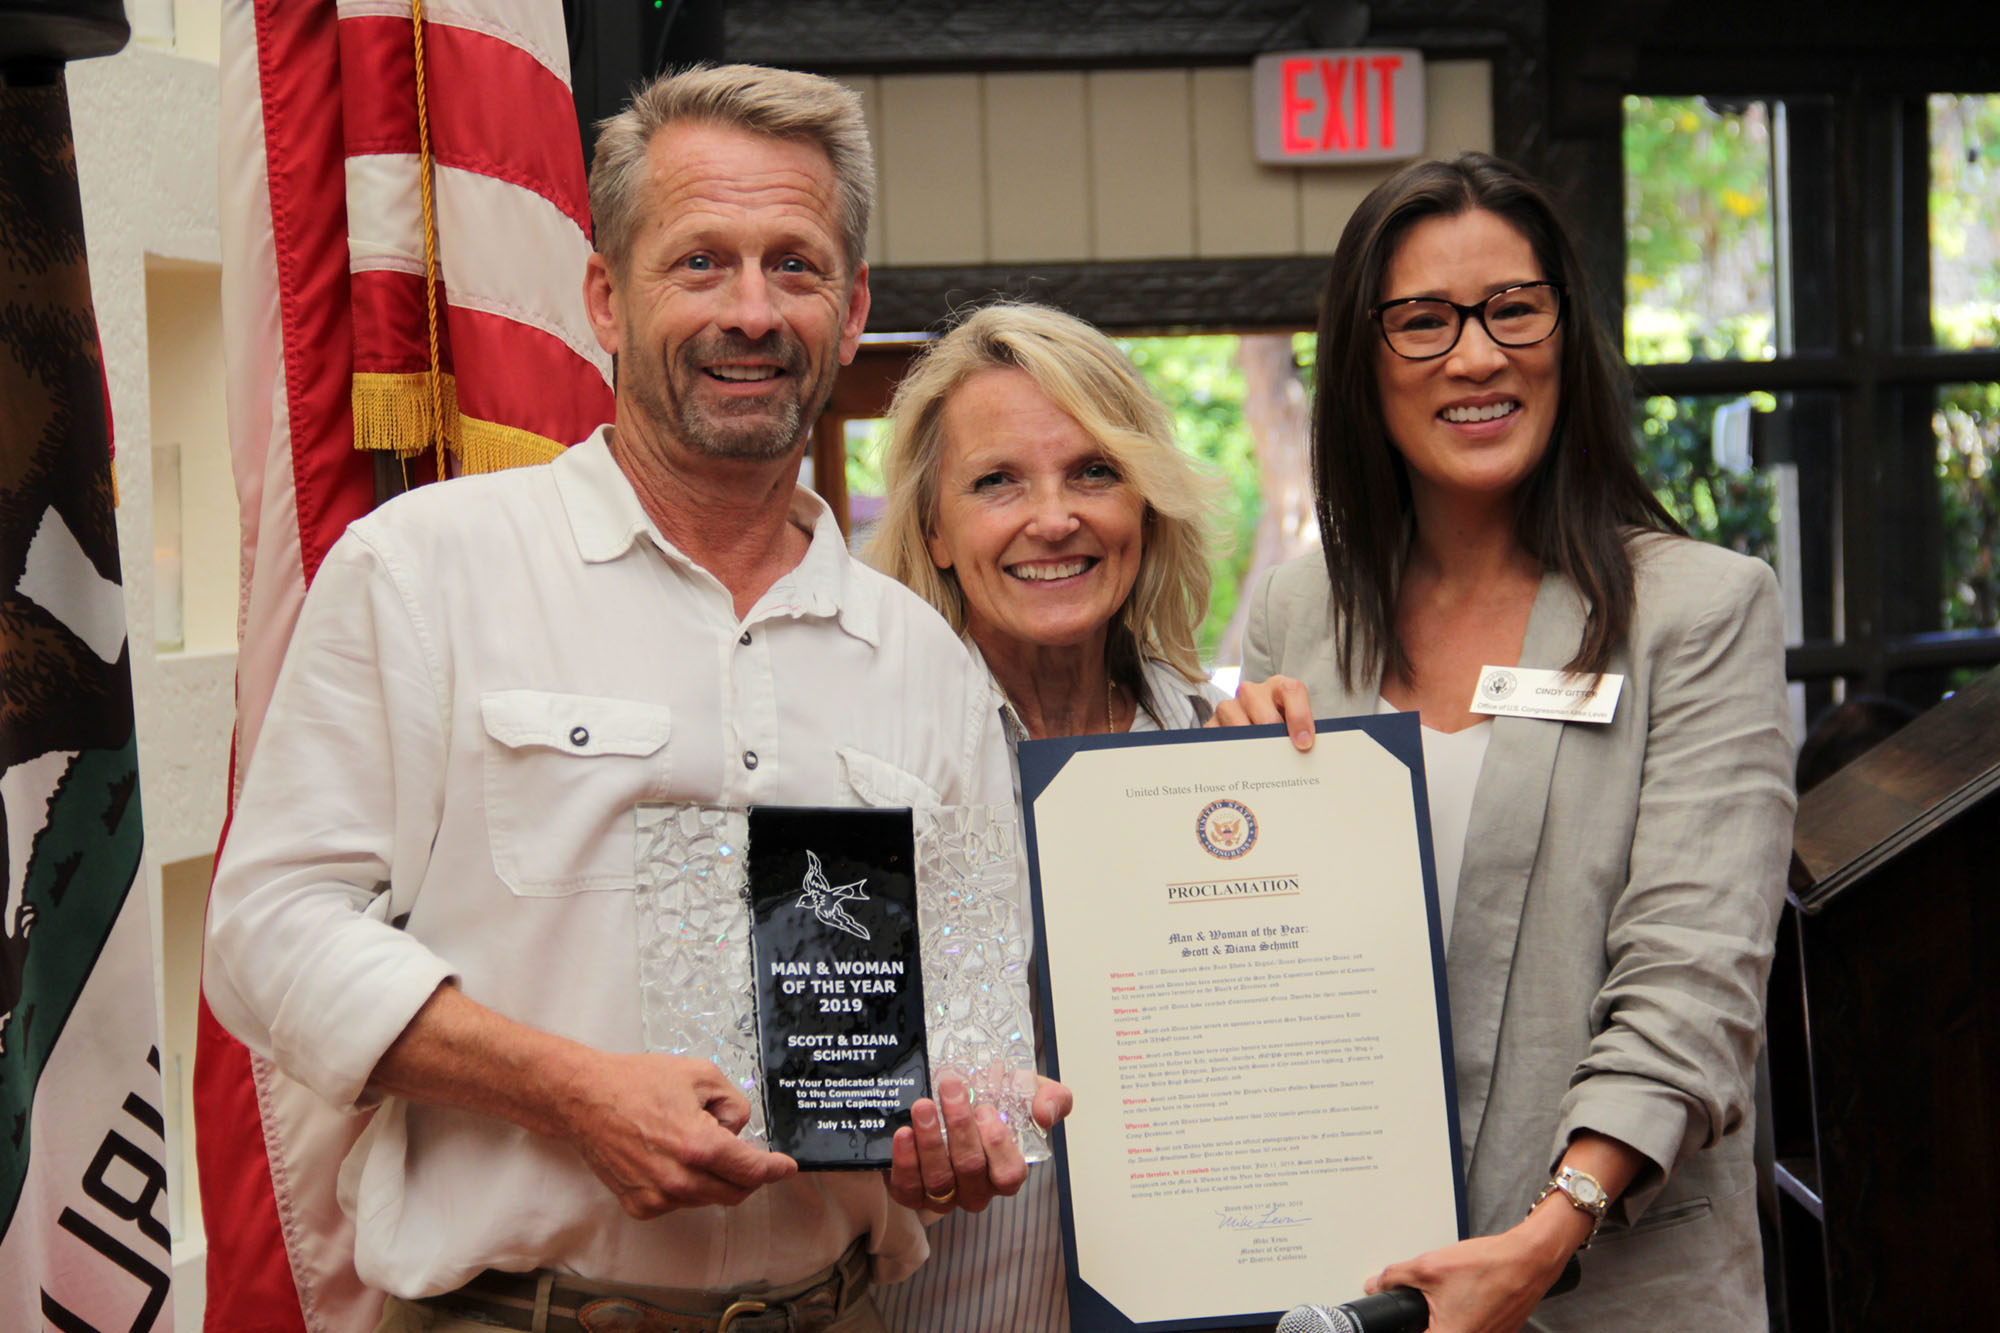 Scott and Diana Schmitt receive the San Juan Capistrano Chamber of Commerce's Man and Woman of the Year Award to Scott and Diana Schmitt during the Annual Installation and Awards Banquet on Thursday, July 11. Photo Shawn Raymundo